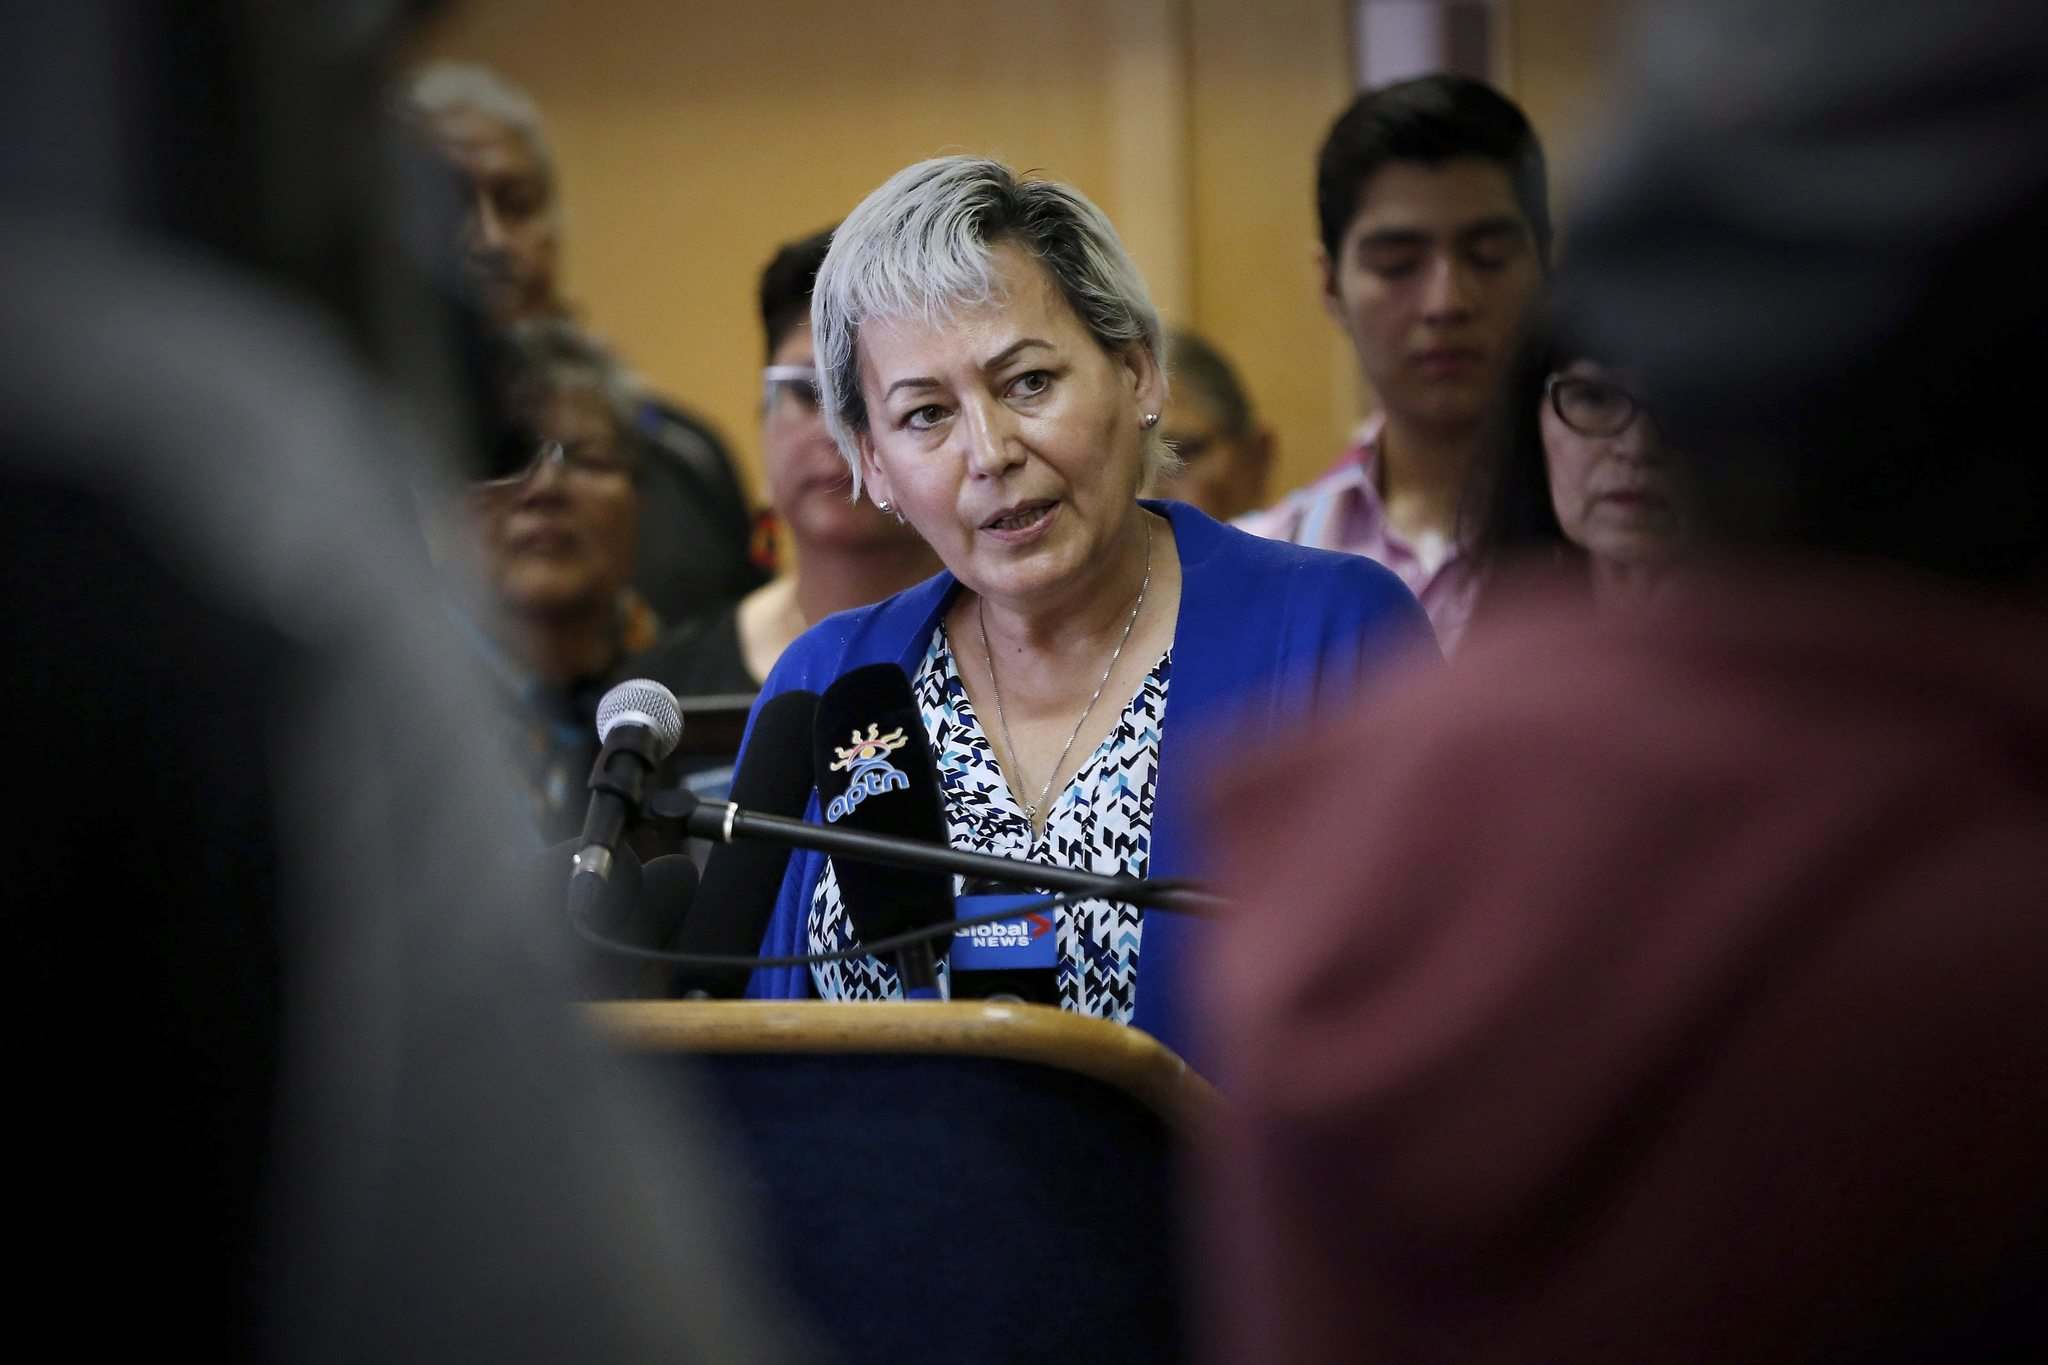 John Woods / The Canadian Press</p><p>Sandra Delaronde (MMIWG) Coalition Co-chair, speaks at a press conference calling for a re-organization of the National Inquiry into Missing and Murdered Indigenous Women and Girls in Winnipeg, Wednesday, July 12, 2017.</p>